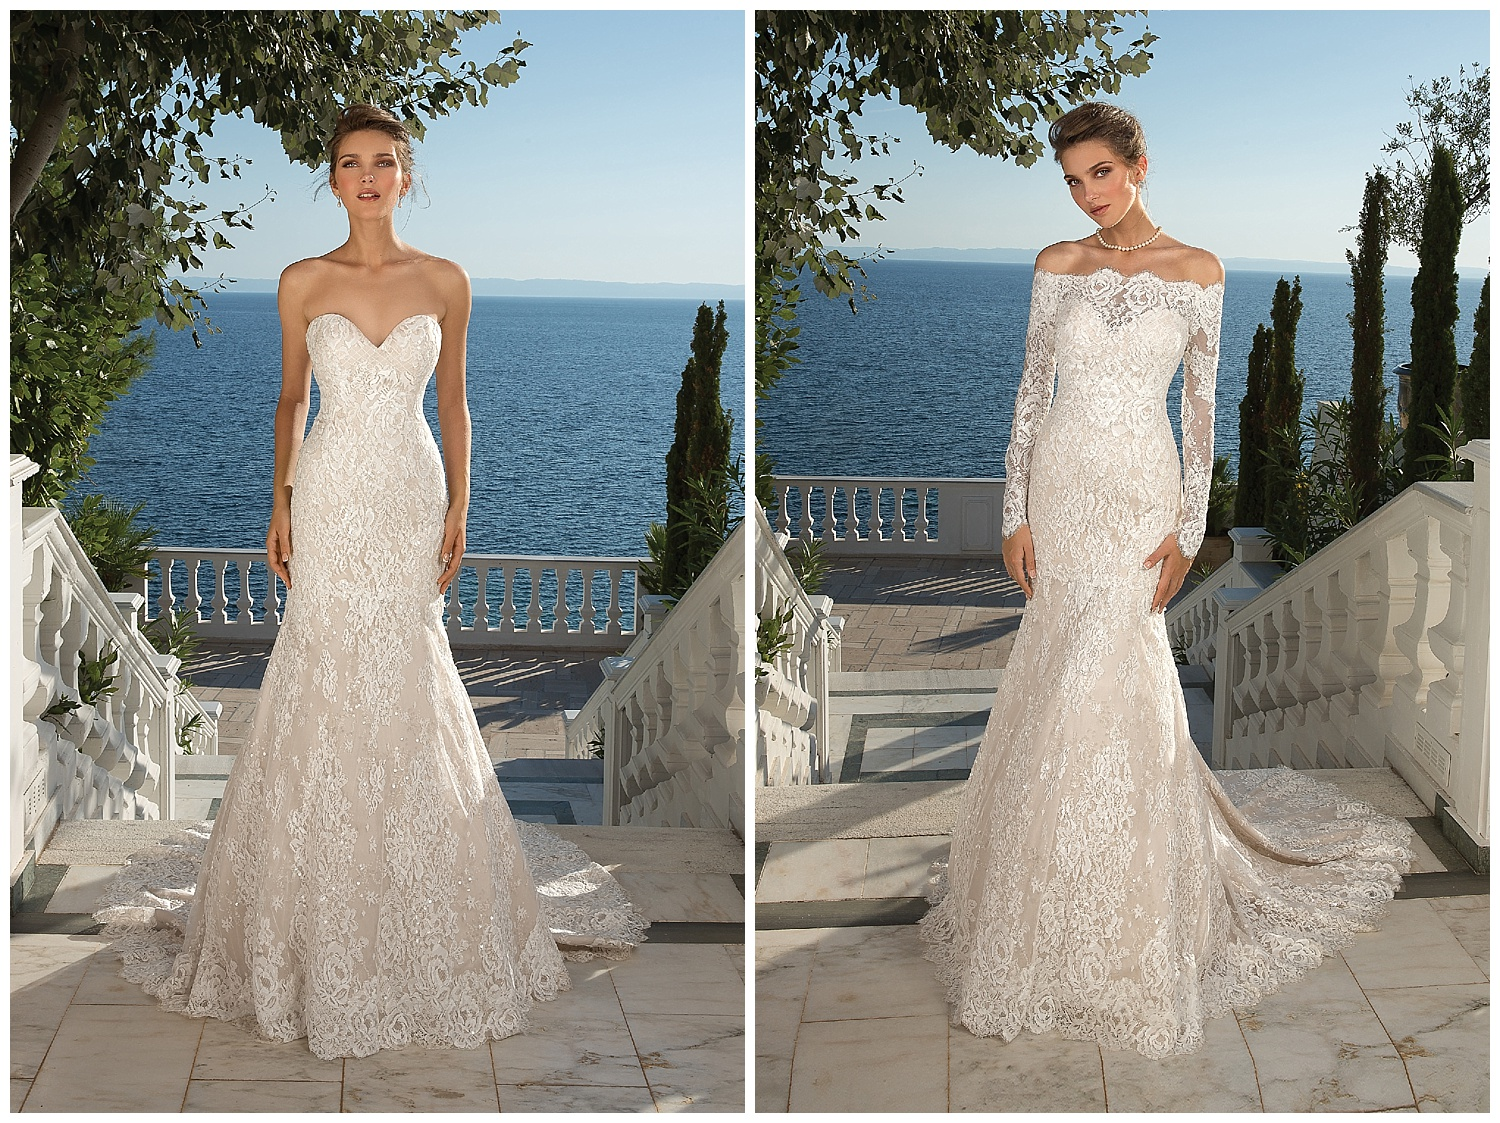 justin-alexander-88087-fitted-lace-wedding-dress-epiphany-boutique-carmel-california.jpg